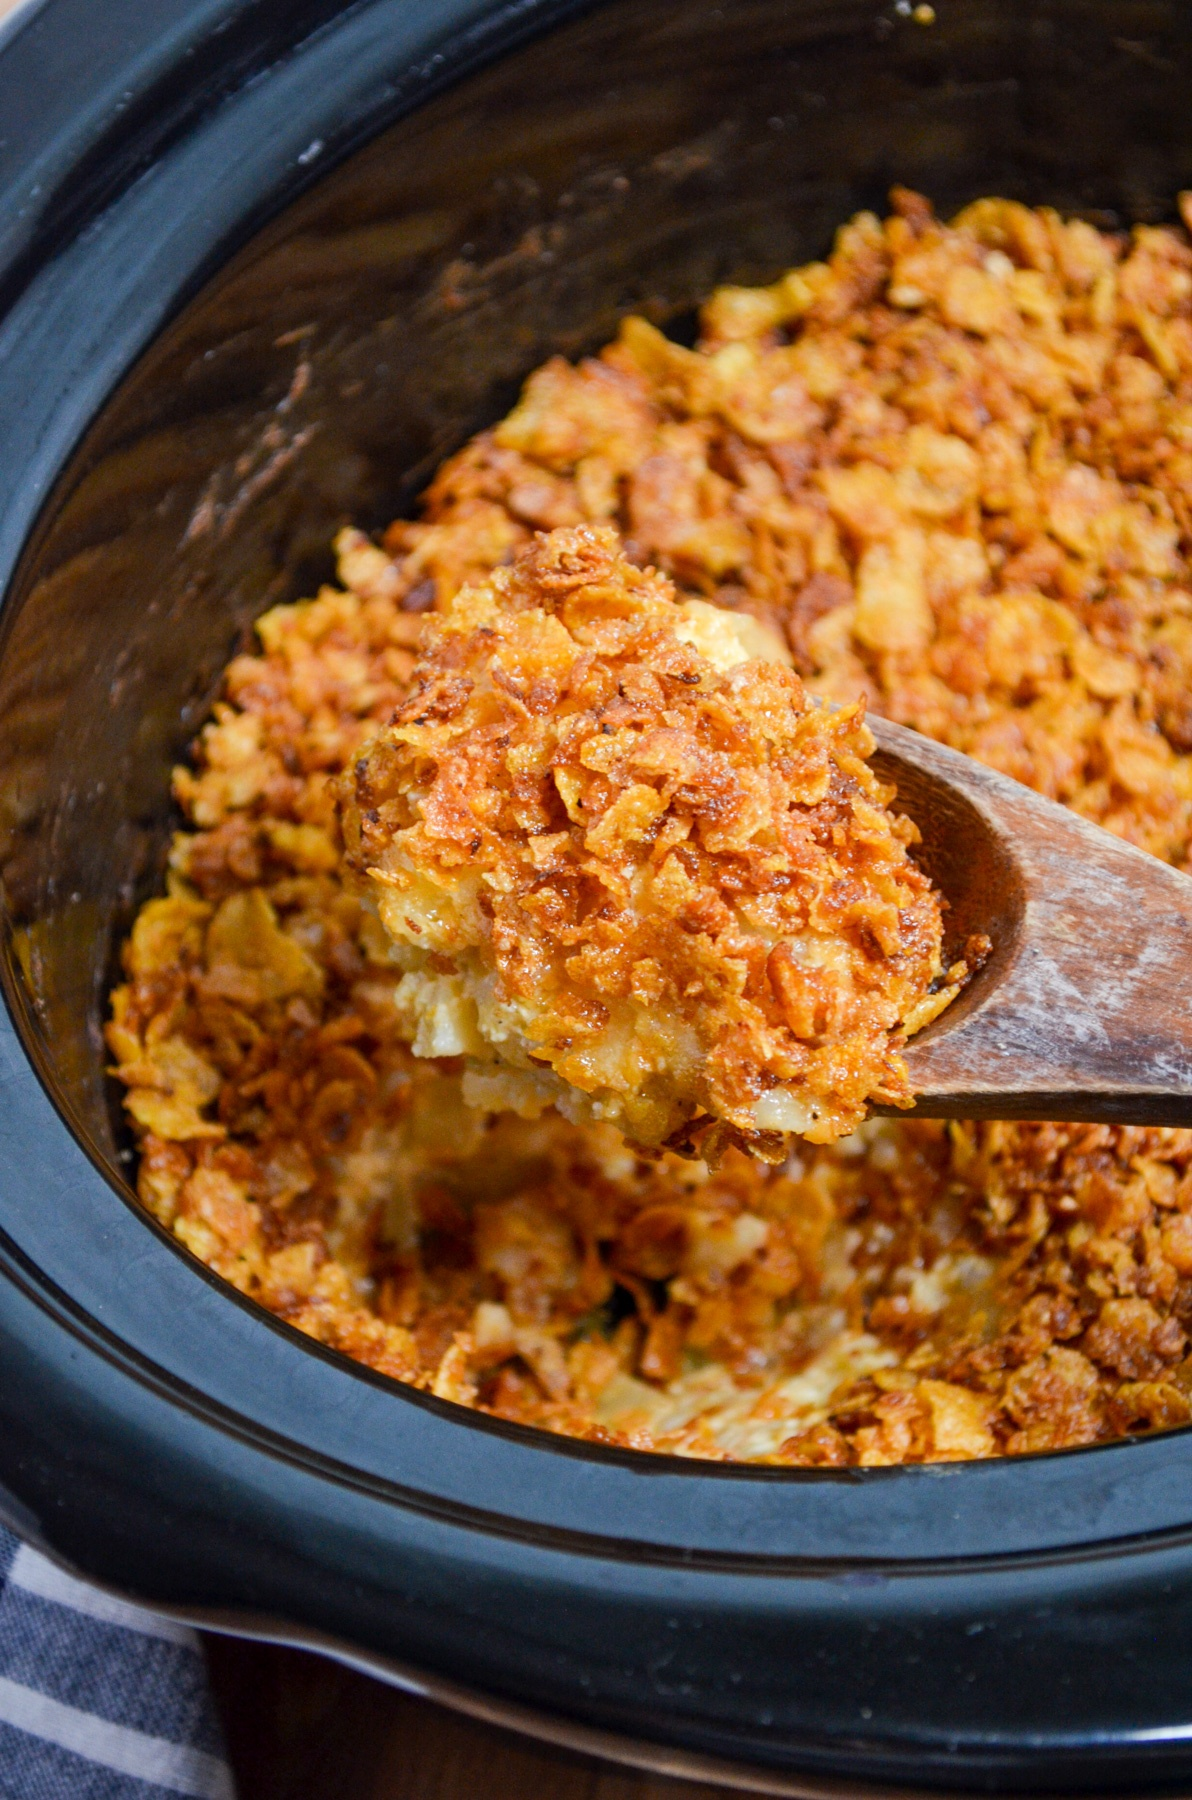 A wooden spoon picks up a portion of funeral potatoes from a crock pot.